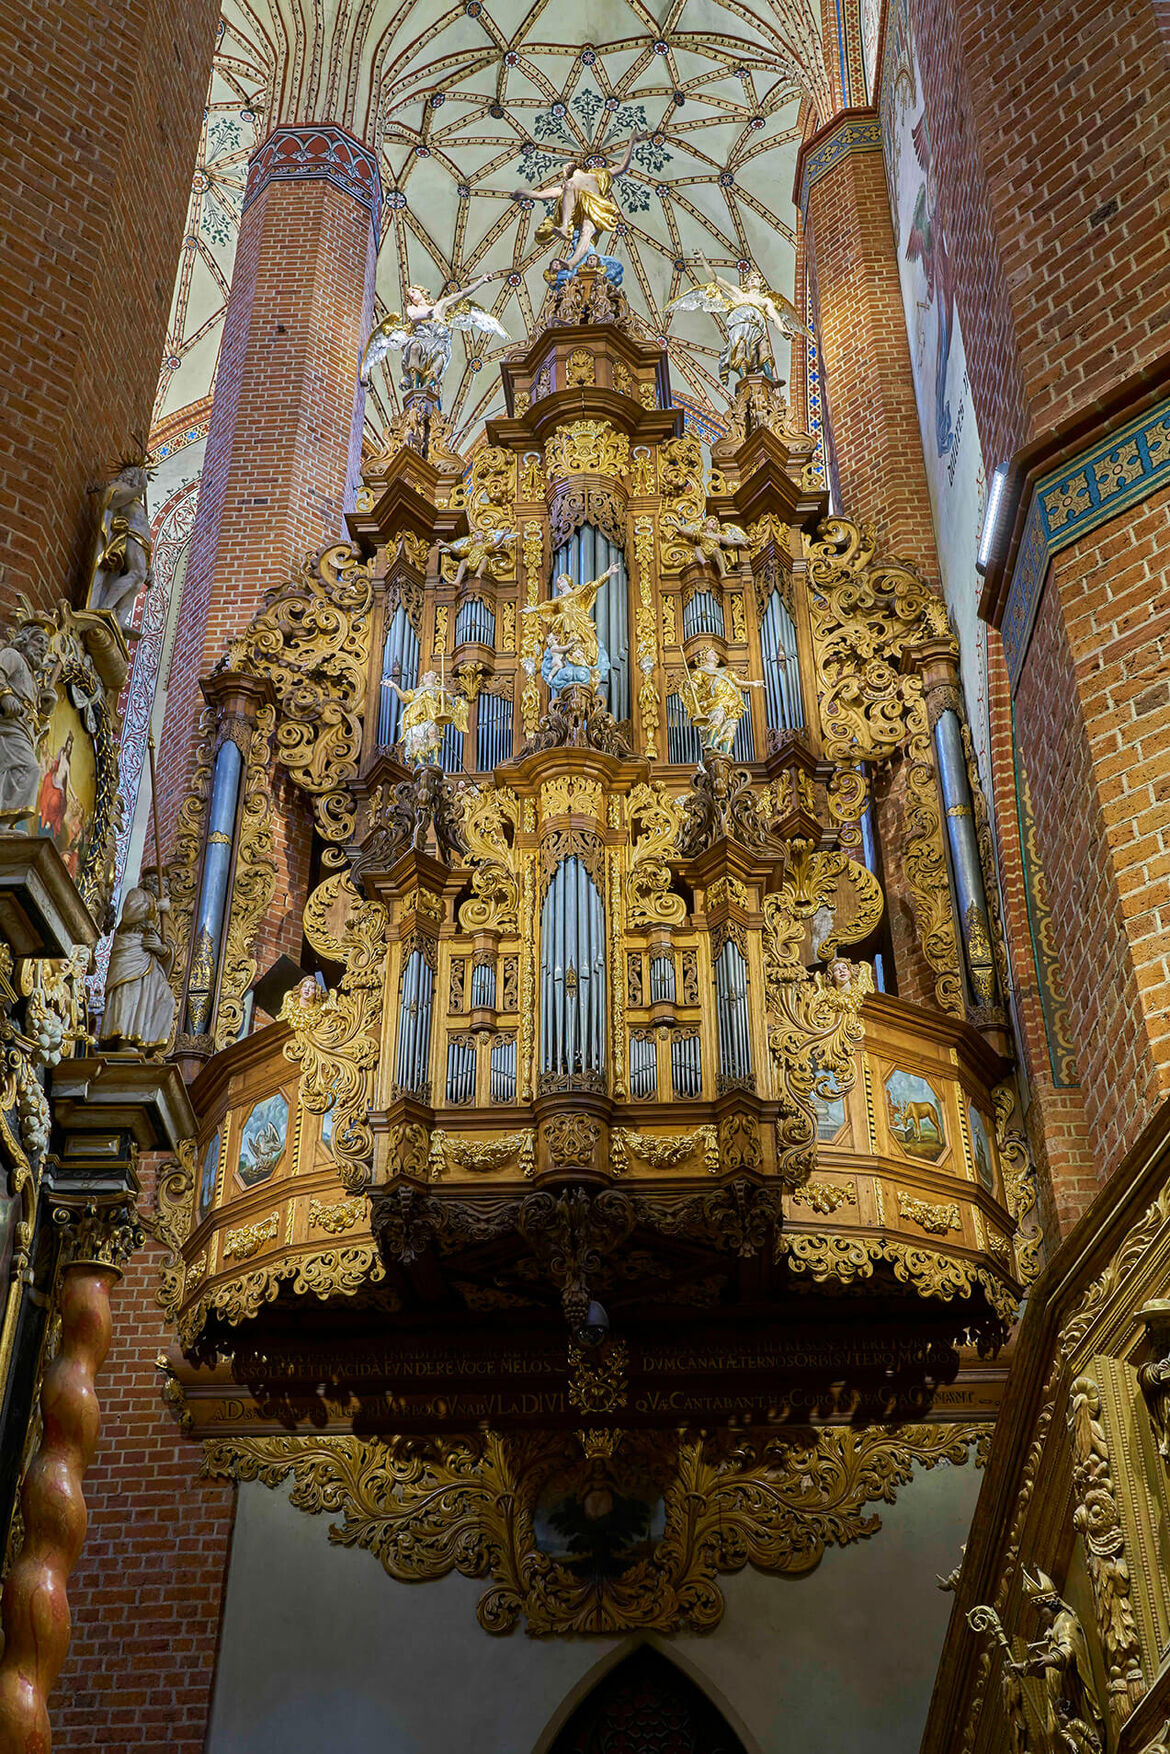 The front of Baroque side organs